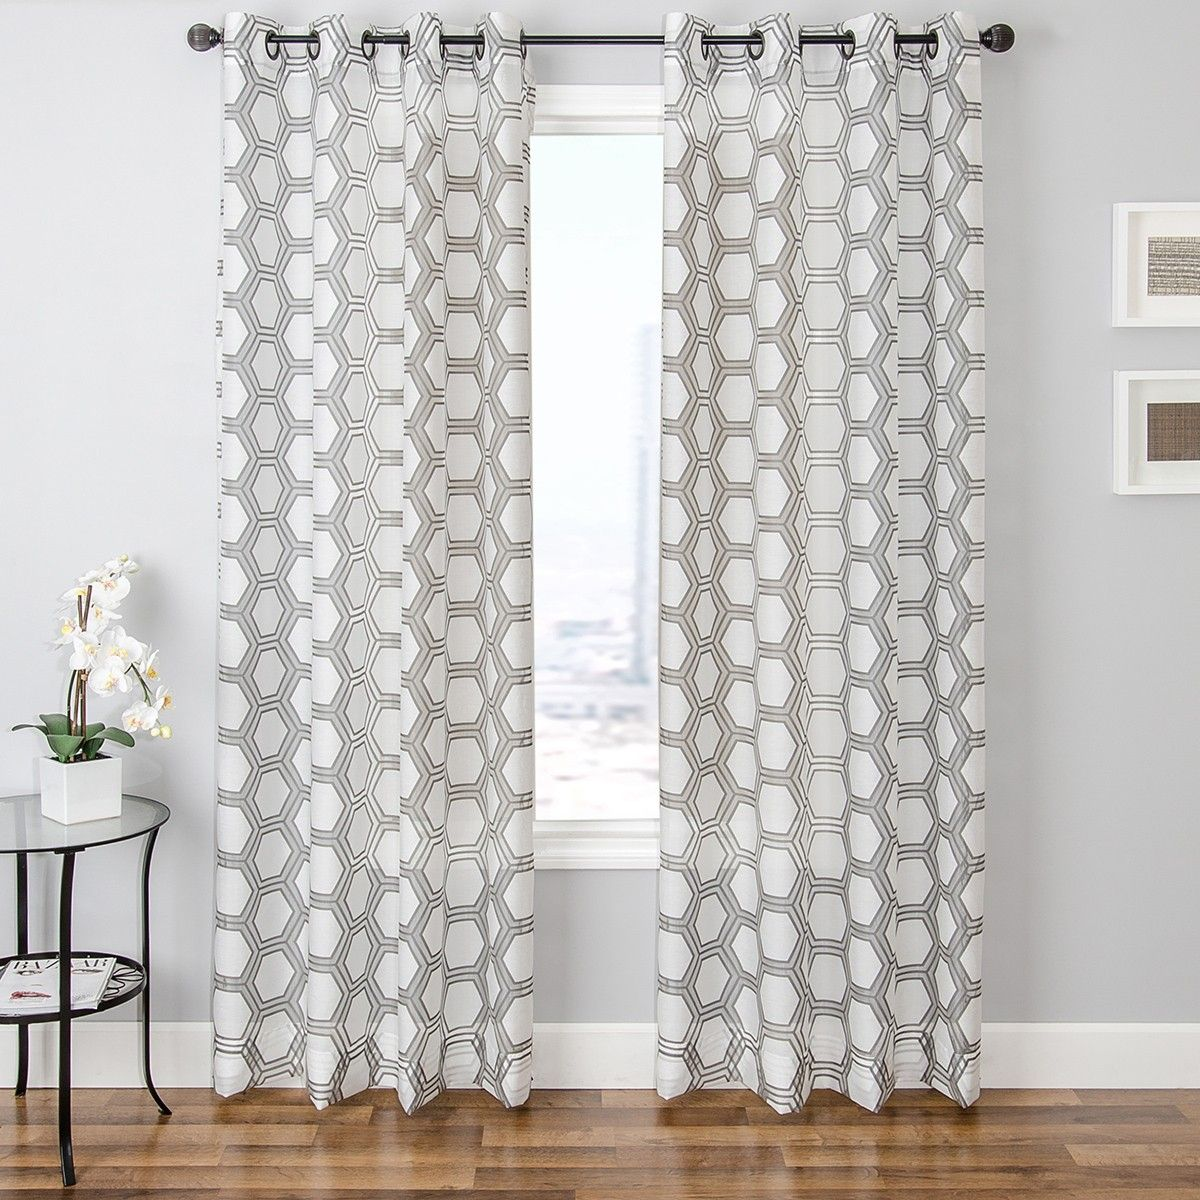 Bust Of Adorn Your Interior With White Patterned Curtains